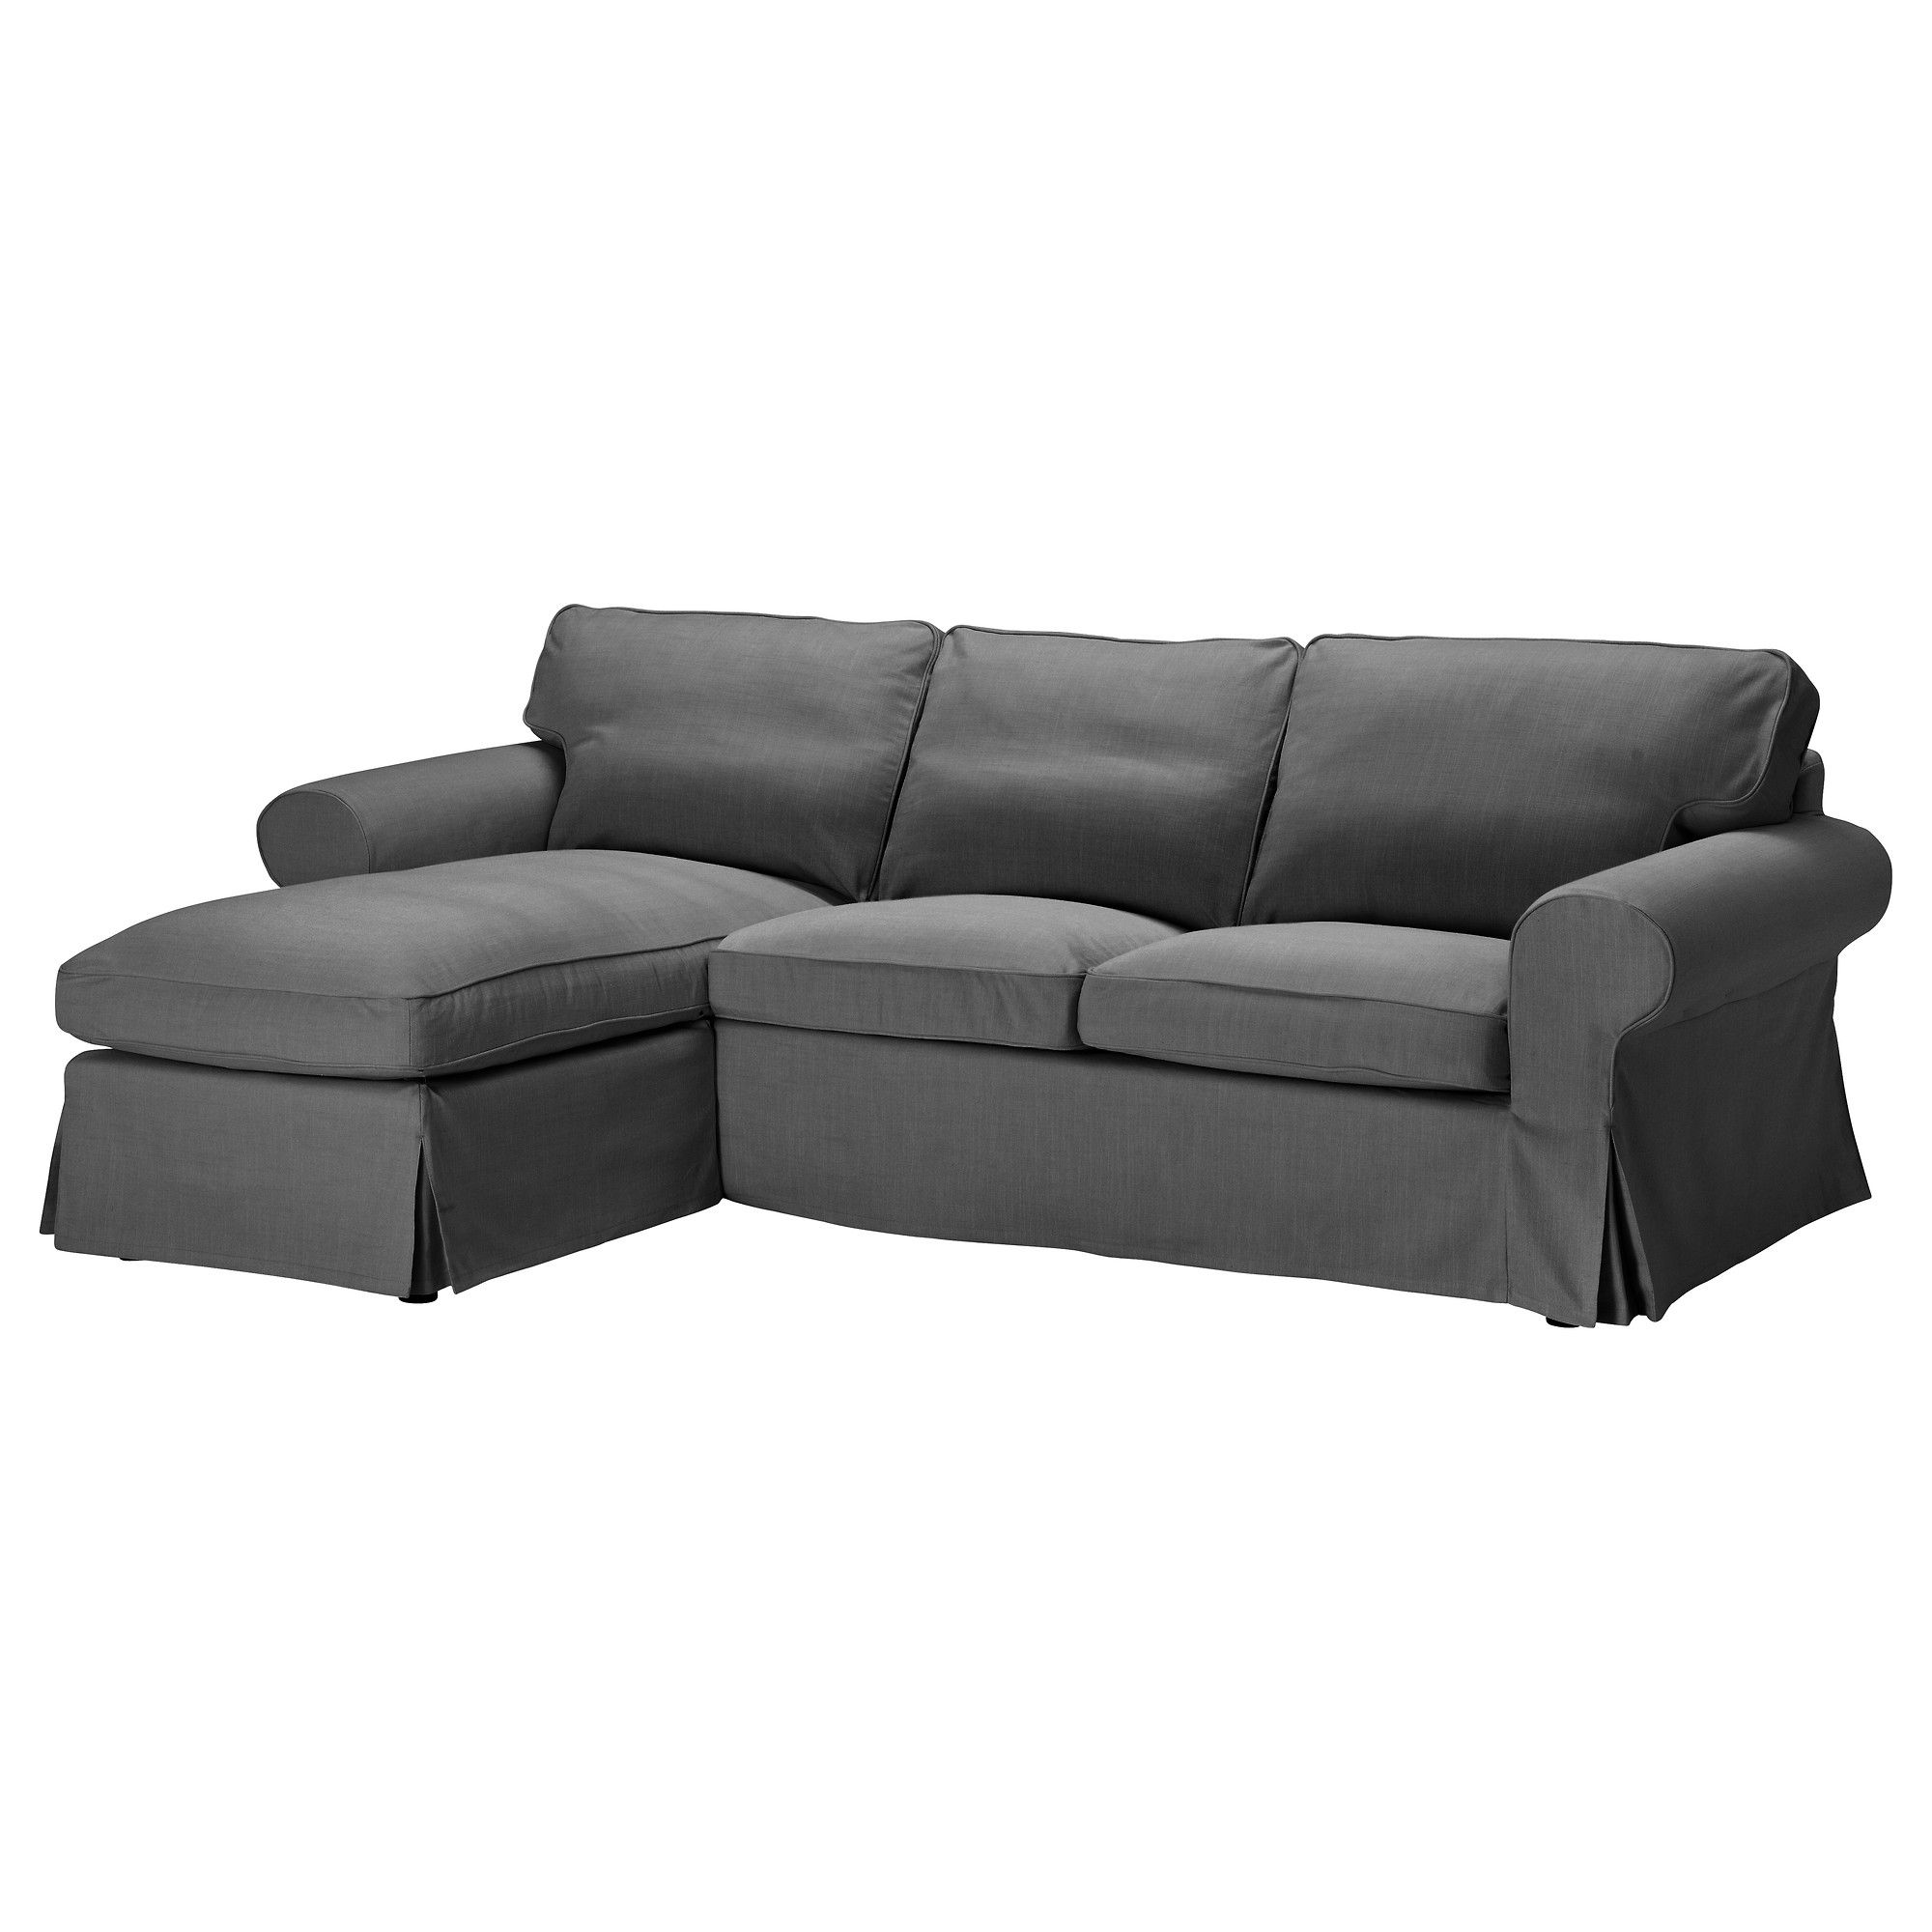 grey sofa chaise lounge plastic legs uk ektorp cover for loveseat with svanby gray ikea